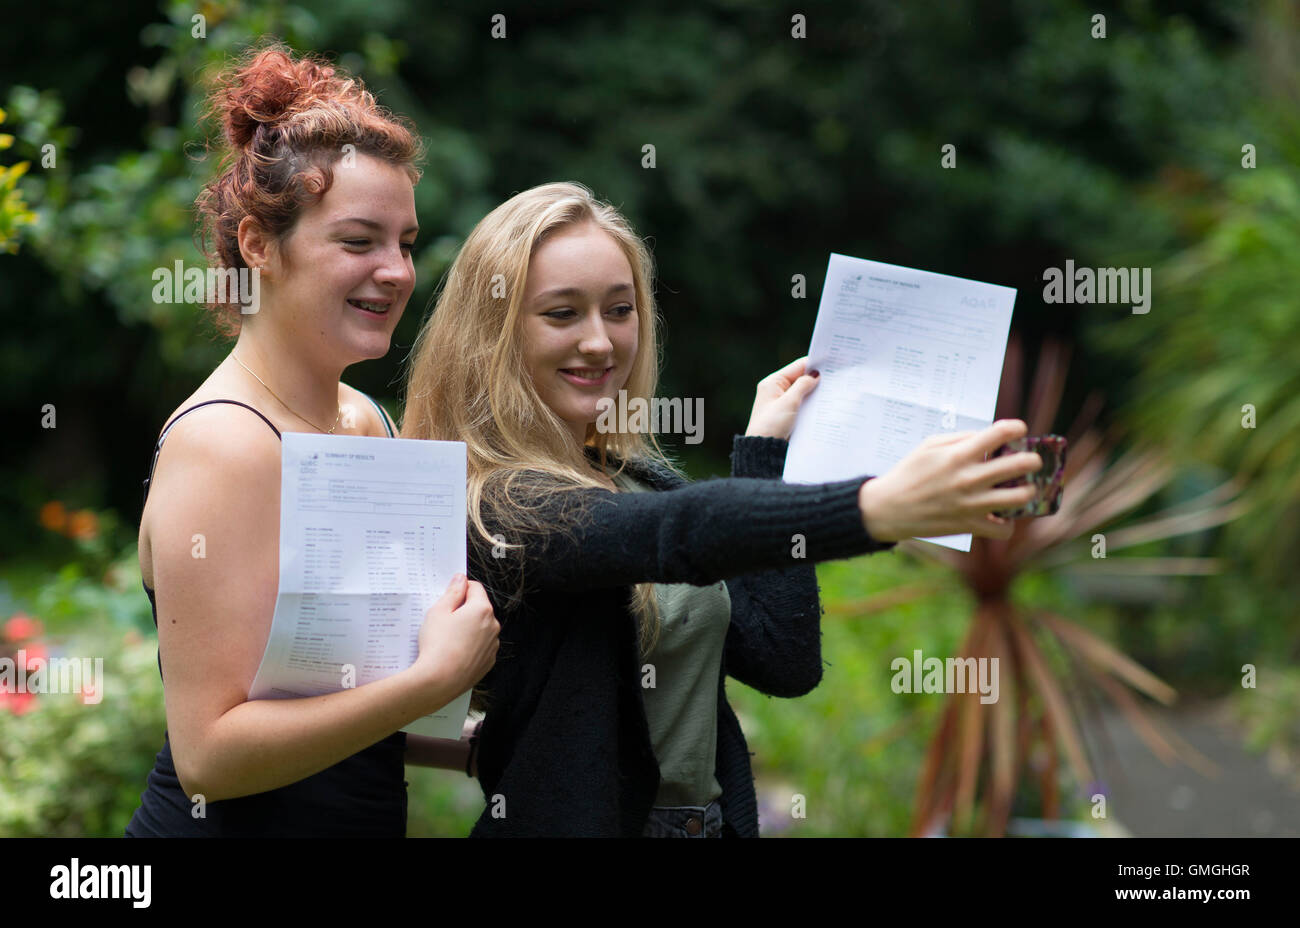 Female students collect their GCSE results at a school. - Stock Image